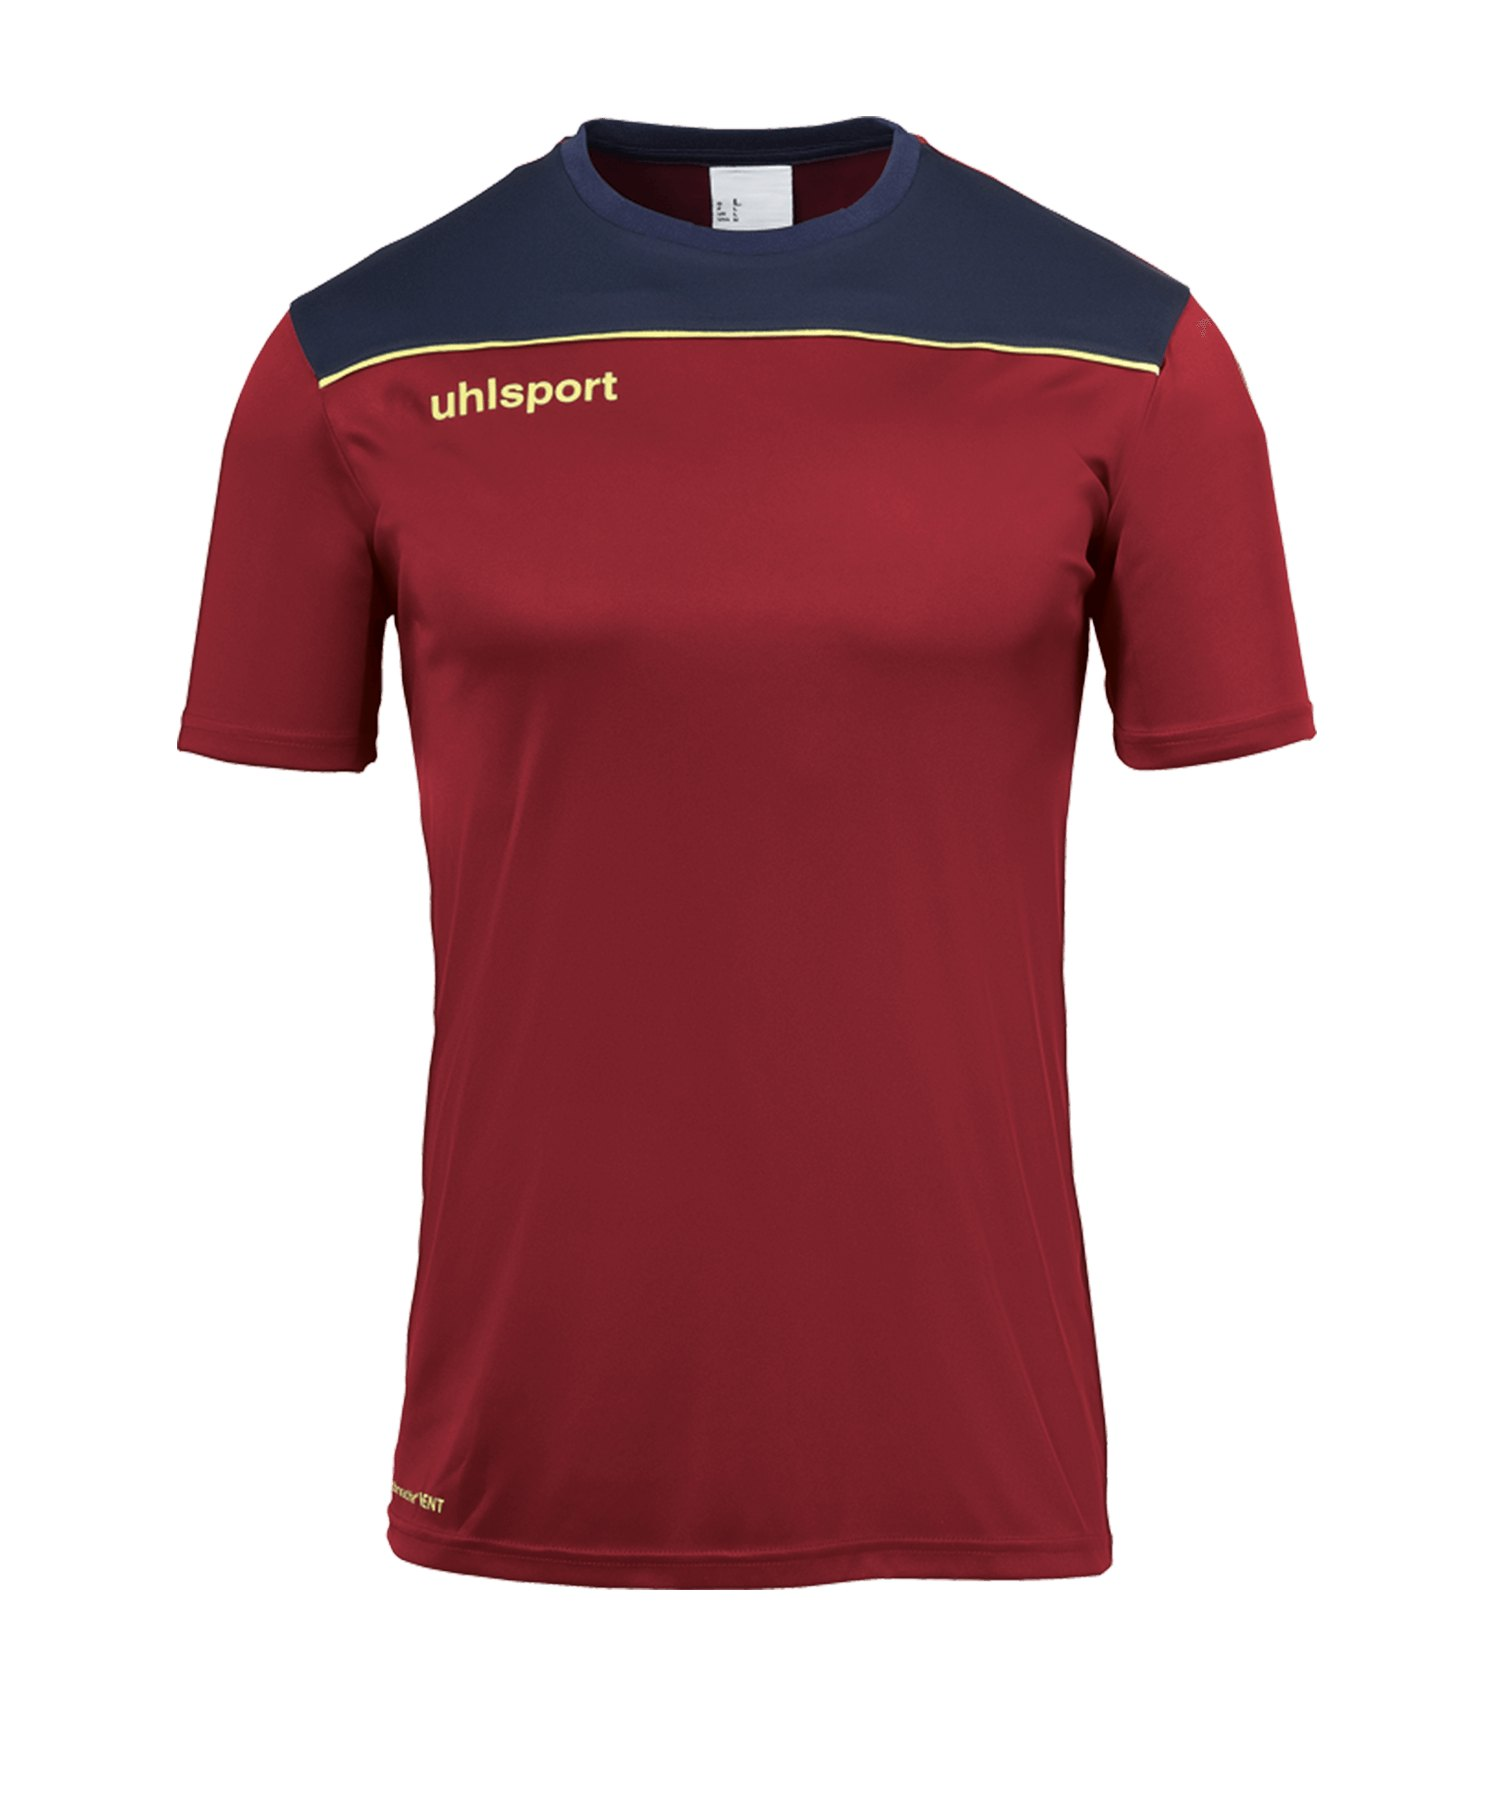 Uhlsport Offense 23 Trainingsshirt Kids Rot F13 - rot